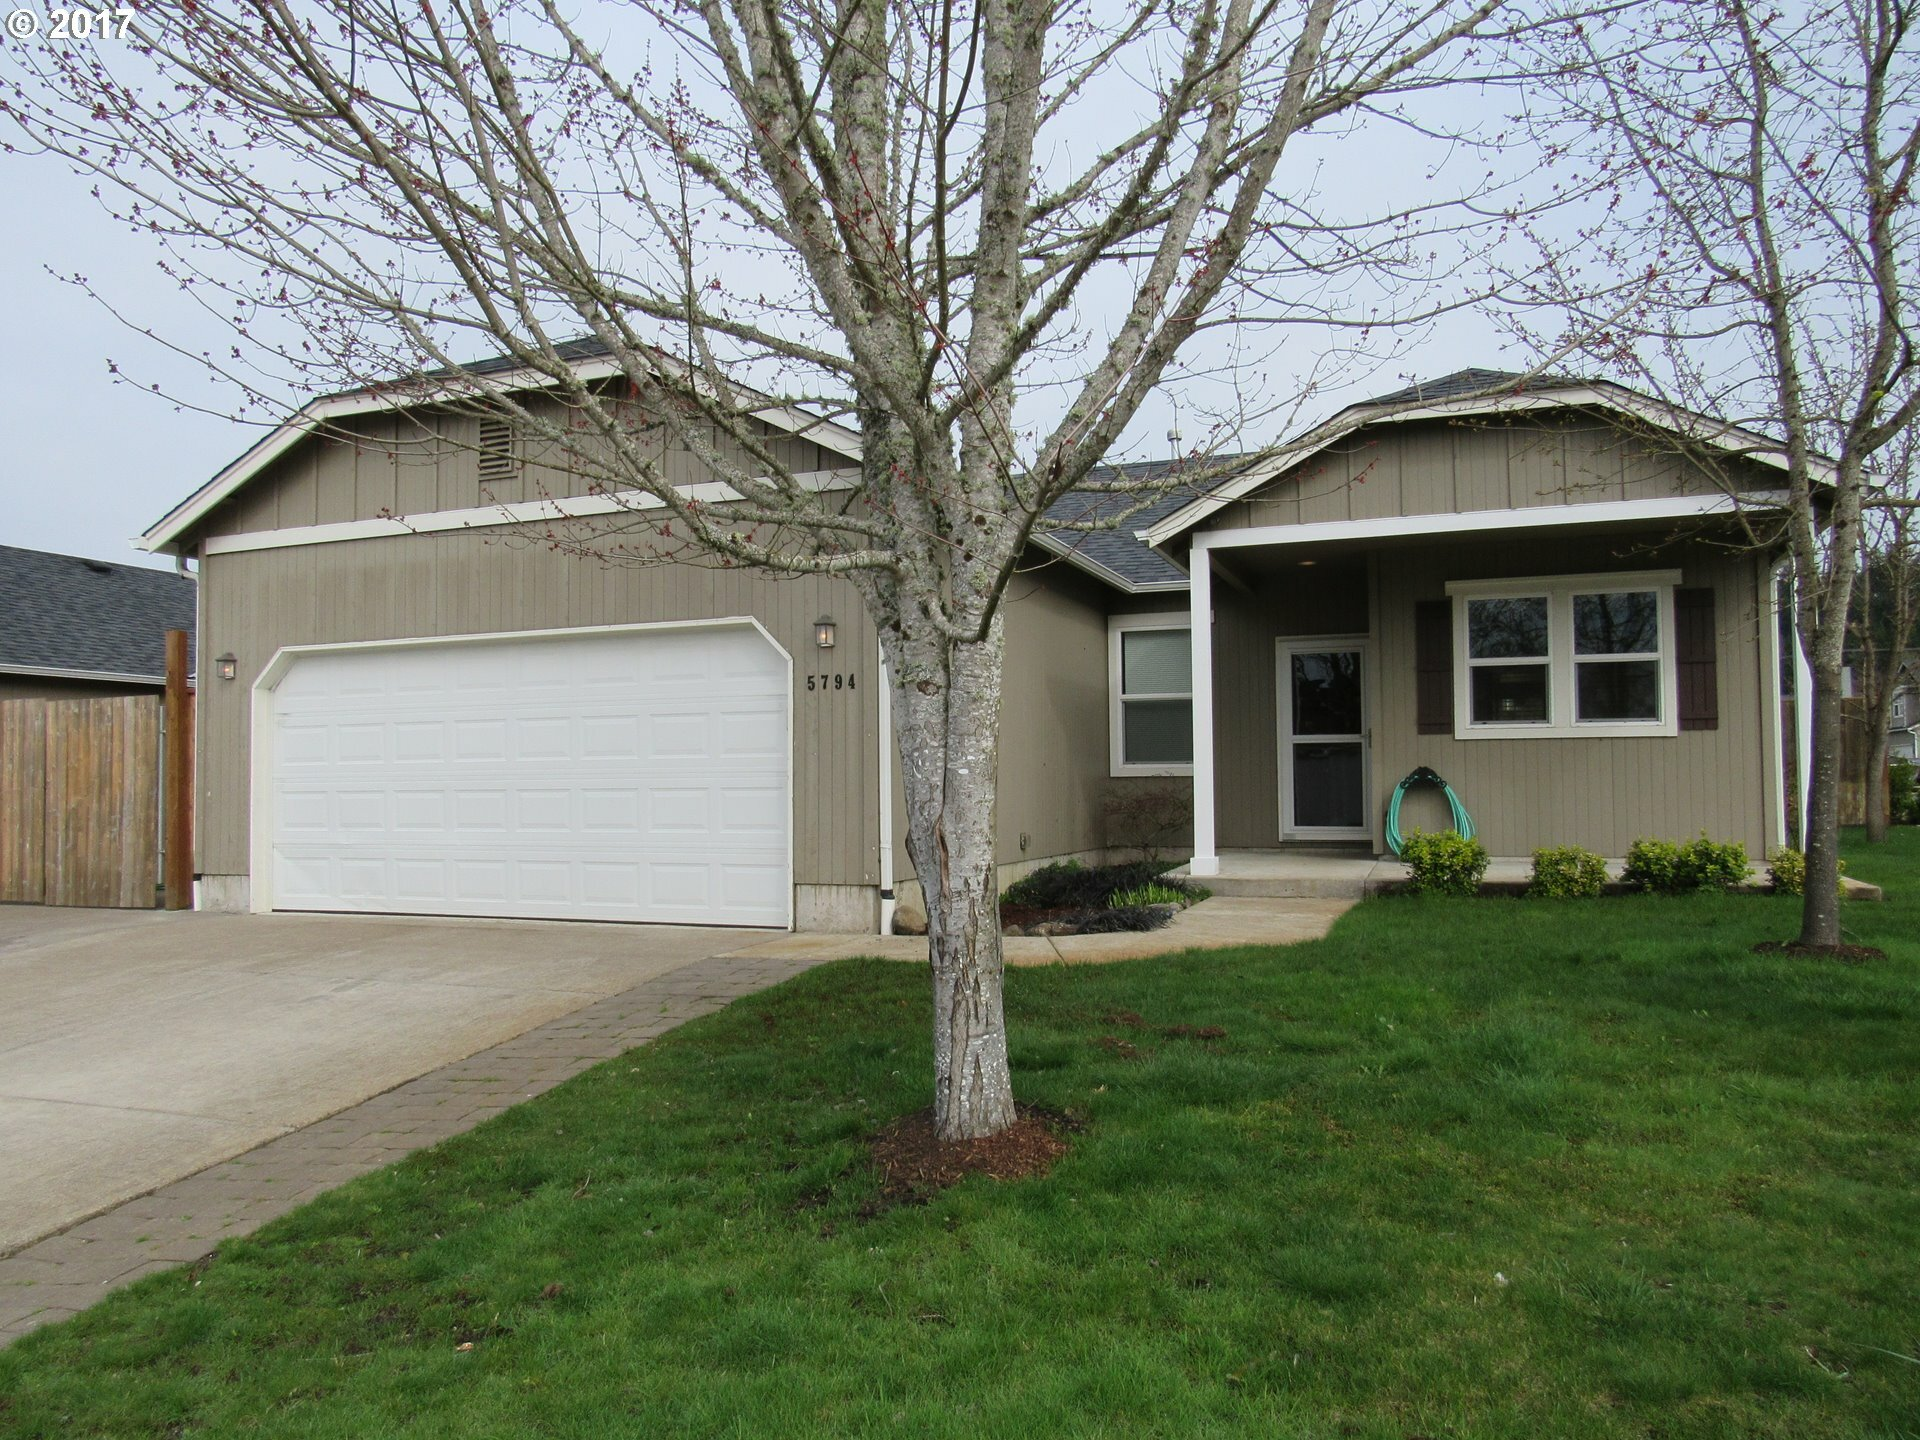 5794 Cinder St, Springfield, OR - USA (photo 1)